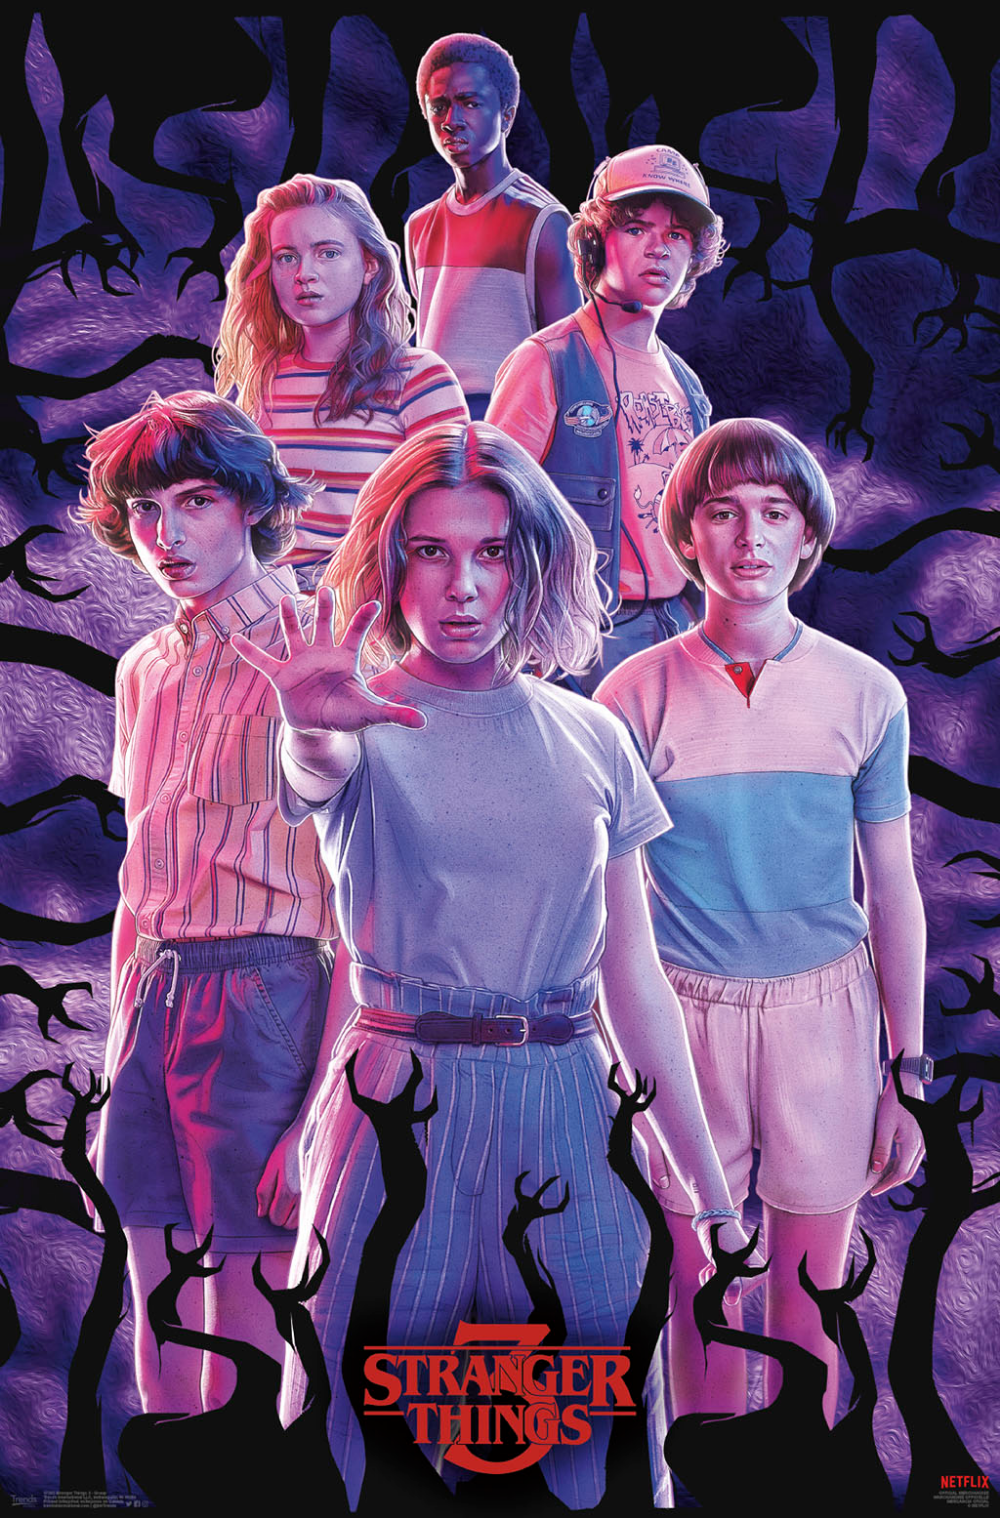 Stranger Things 3 - Group Poster Size: 22.375 inch x 34 inch, Multicolor